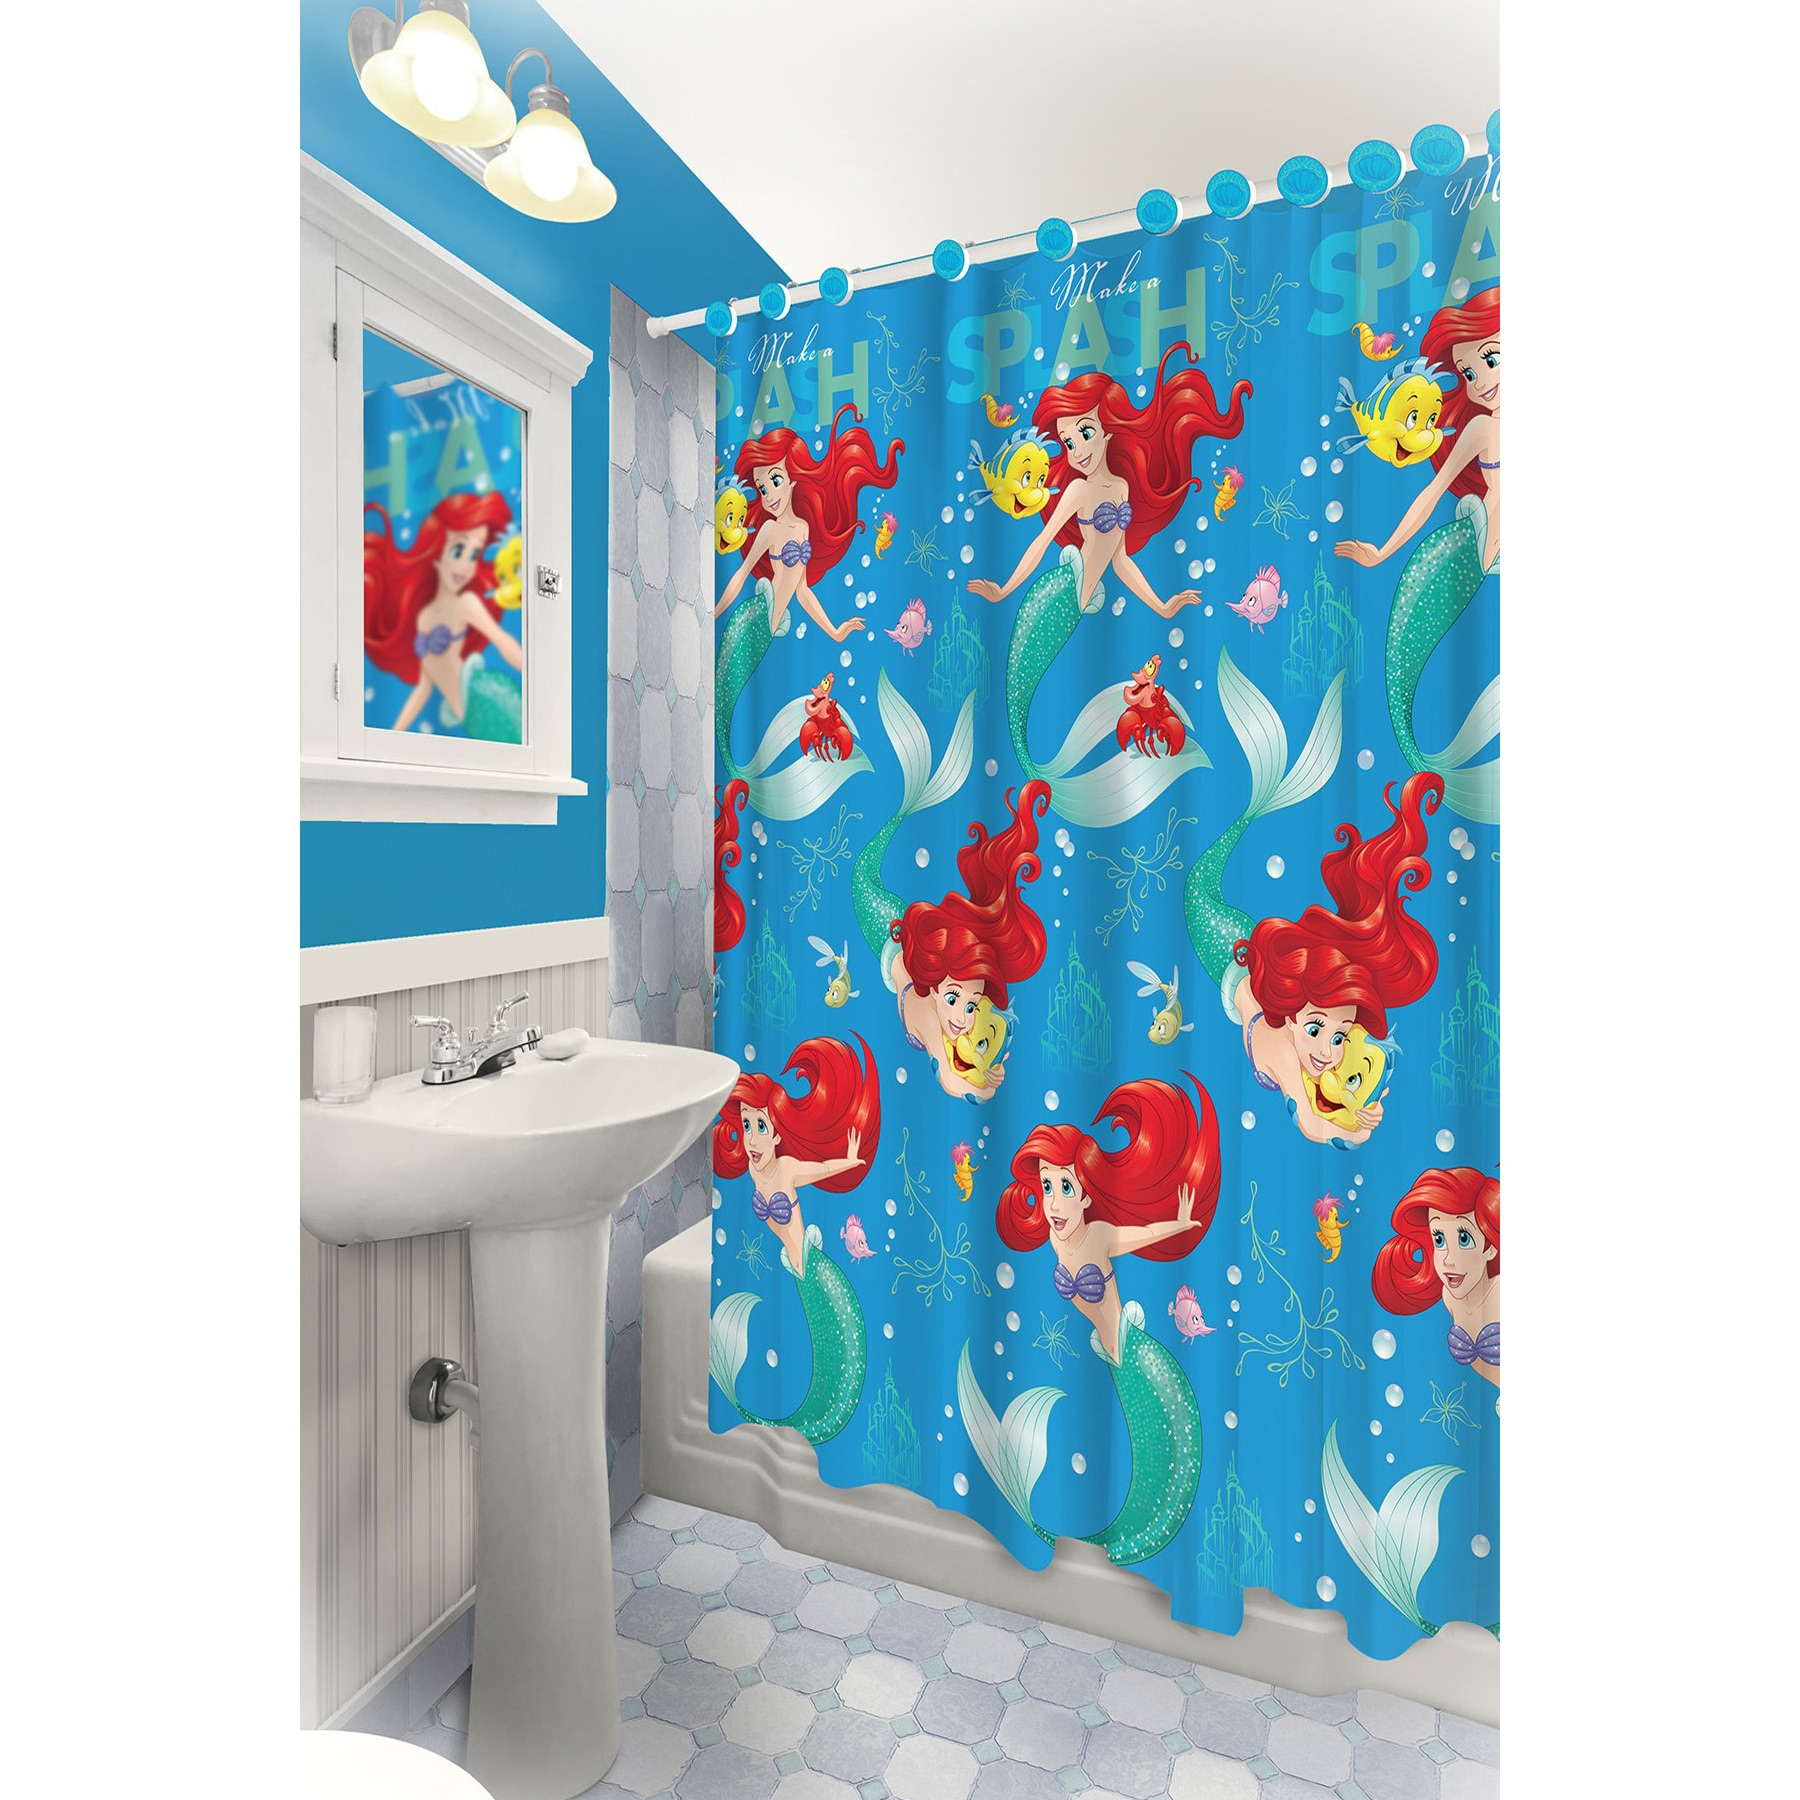 Ariel Shower Curtain The Little Mermaid Themed Printed Shower Curtain With Hooks